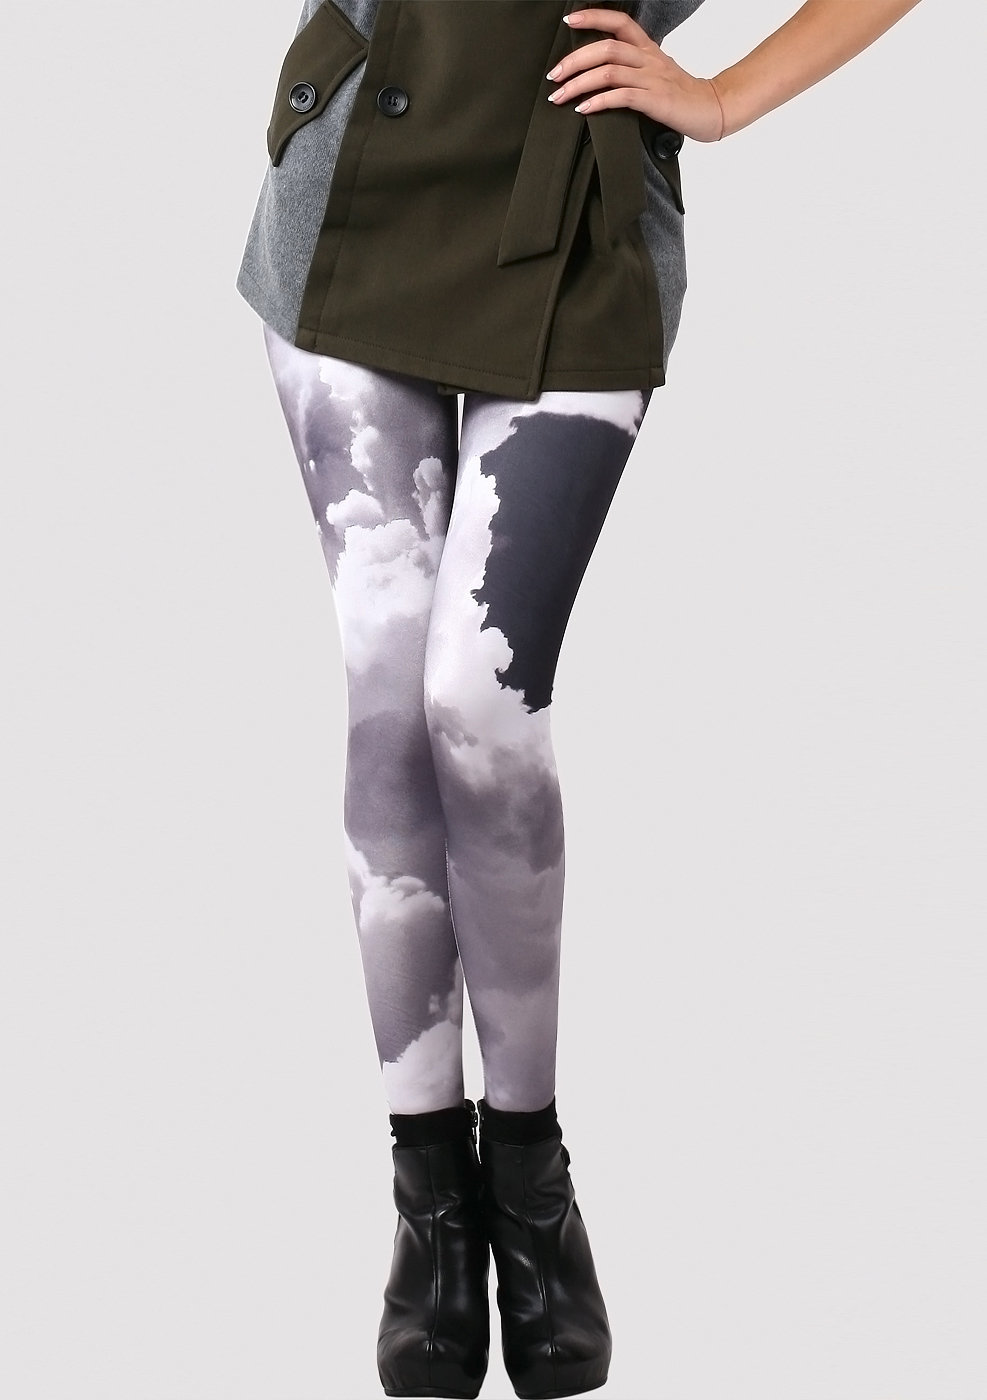 Evening Glow Cloud Print Leggings  - New Arrivals - Retro, Indie and Unique Fashion